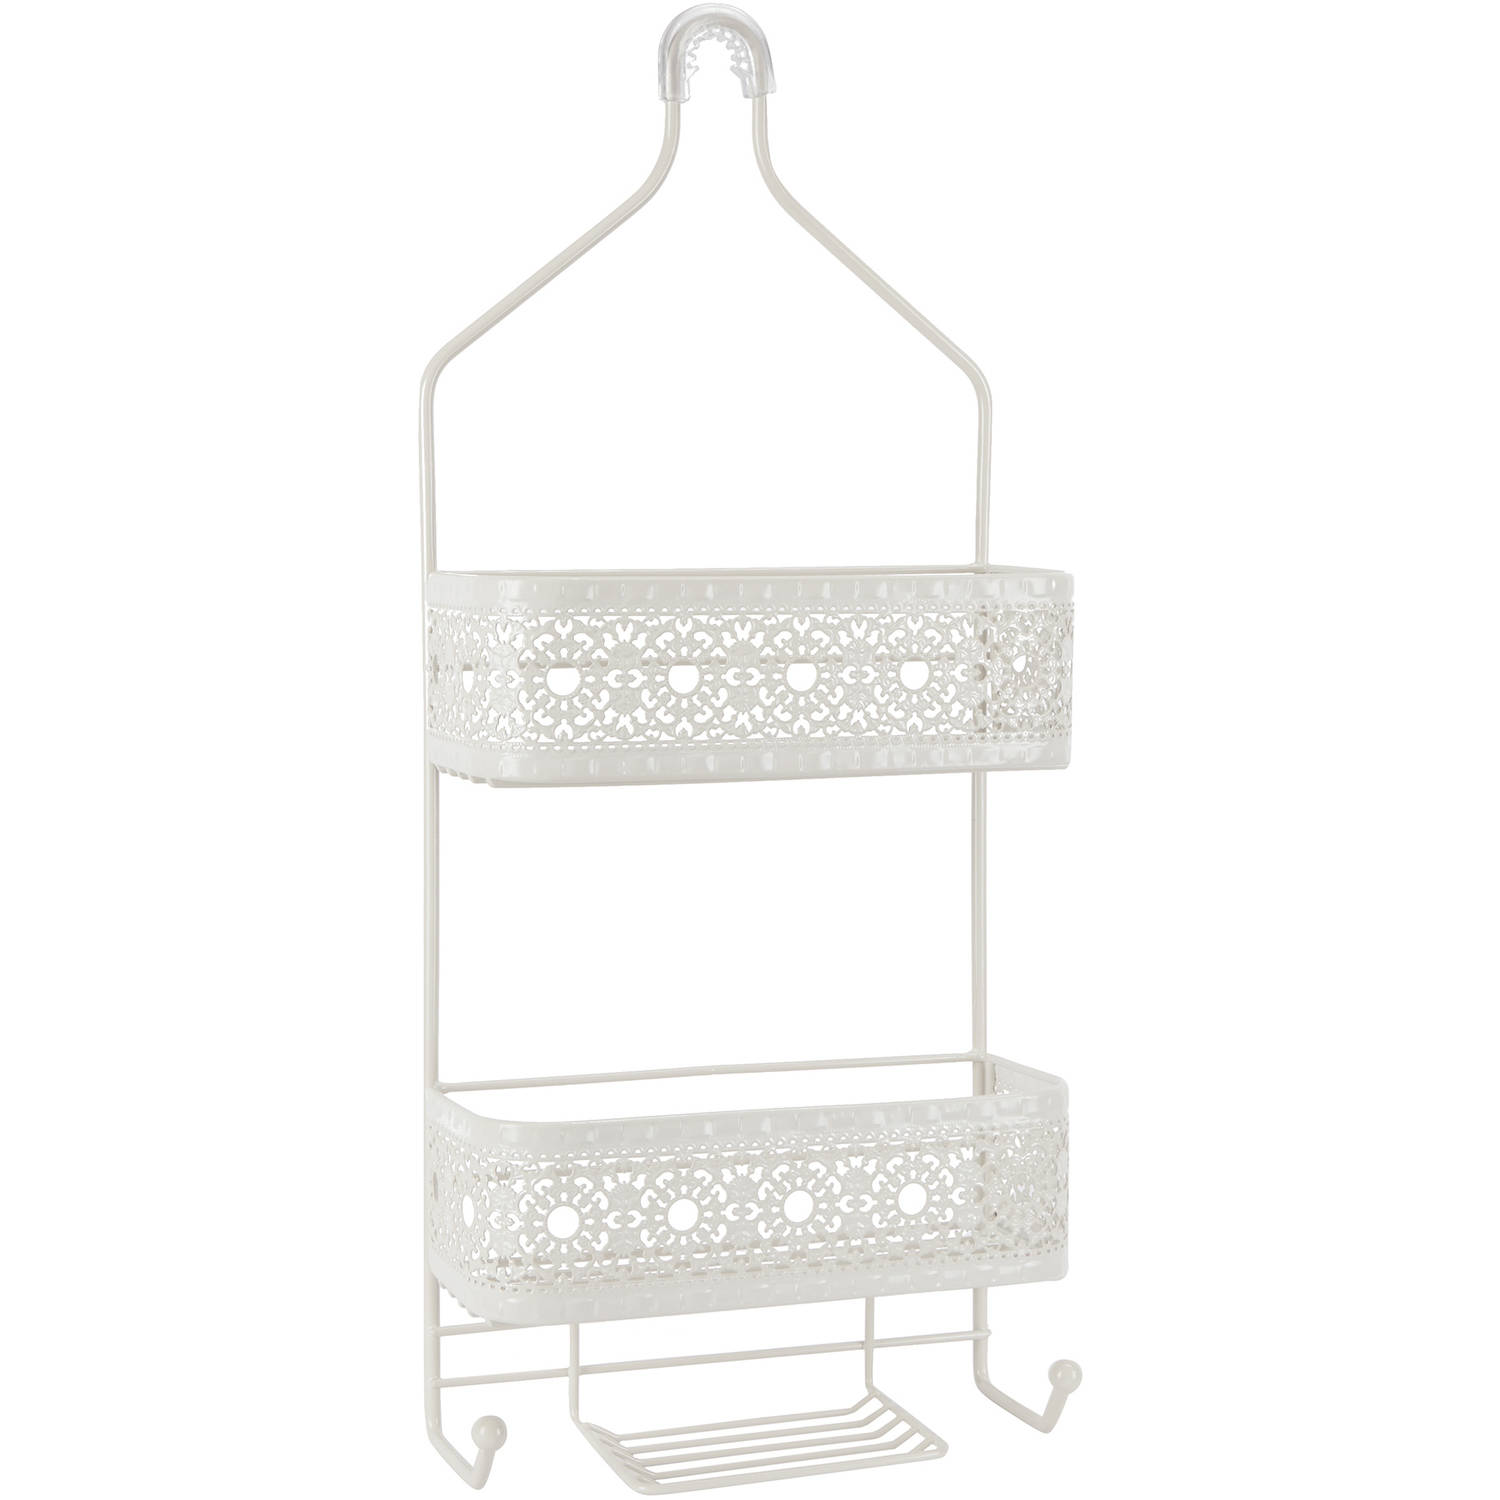 Chapter Filigree Bathroom 2-Shelf Shower Caddy by Cheyenne Products